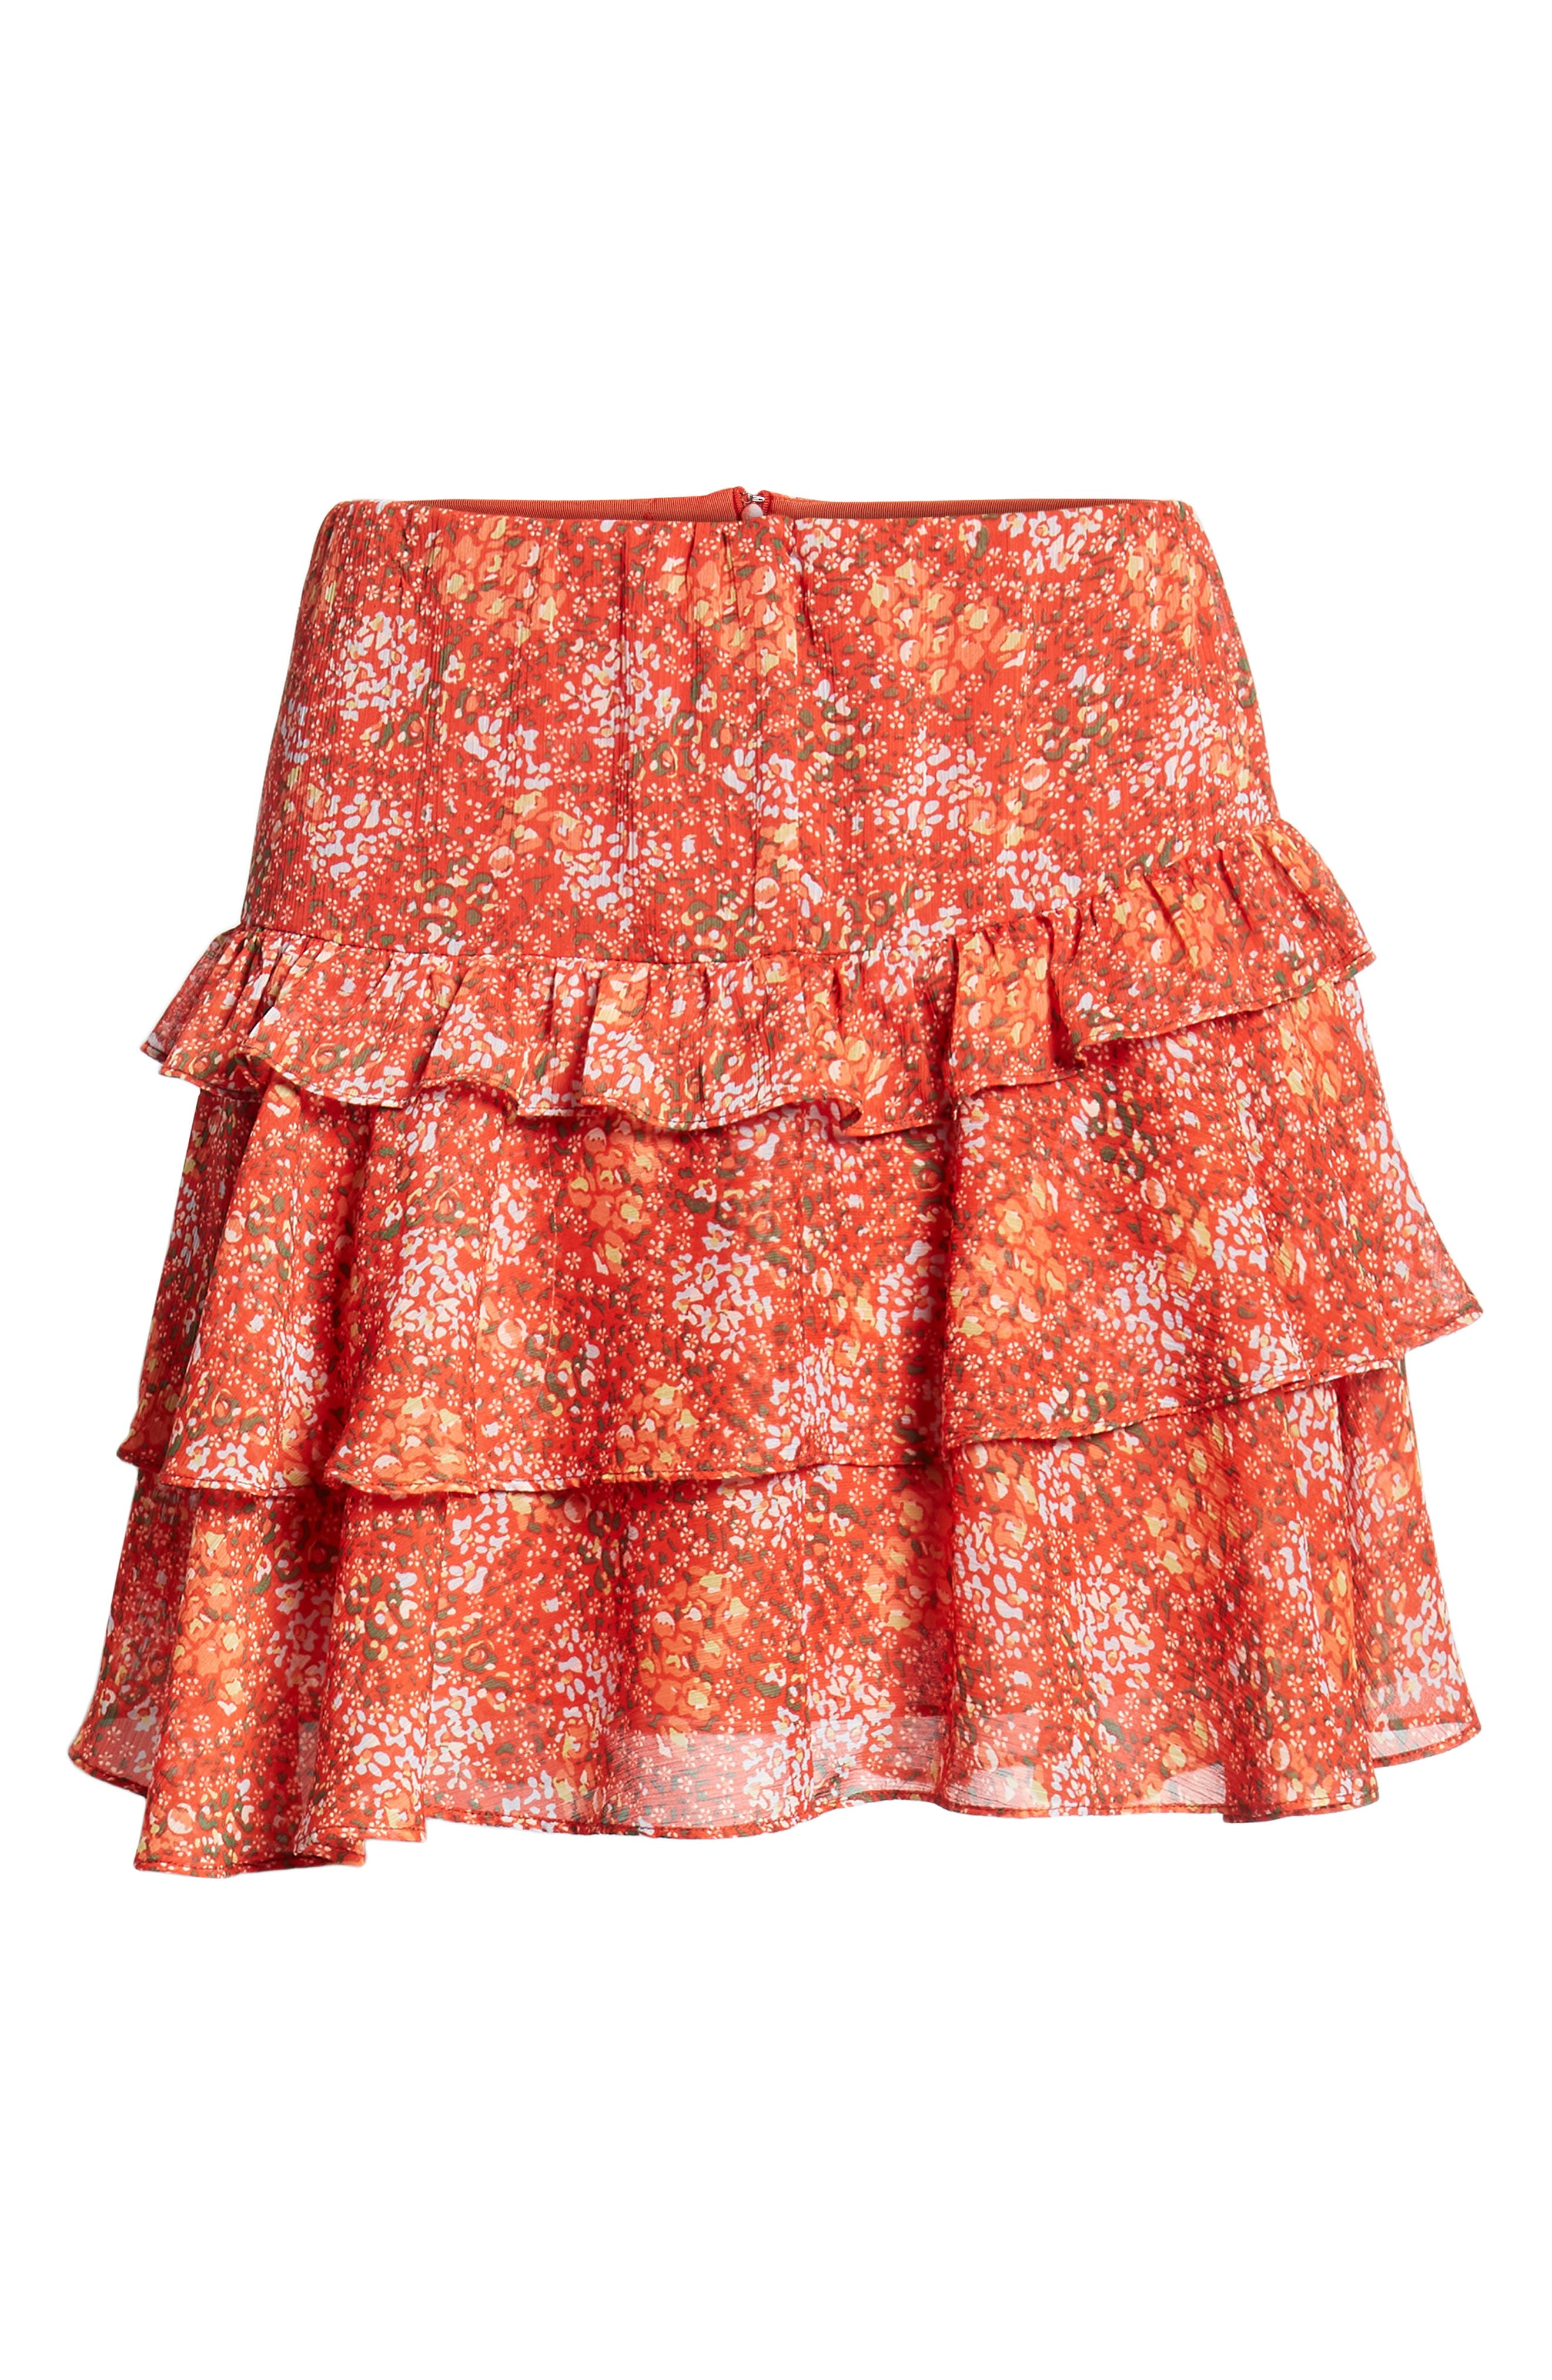 Phoebe Floral Tiered Miniskirt,                             Alternate thumbnail 6, color,                             603